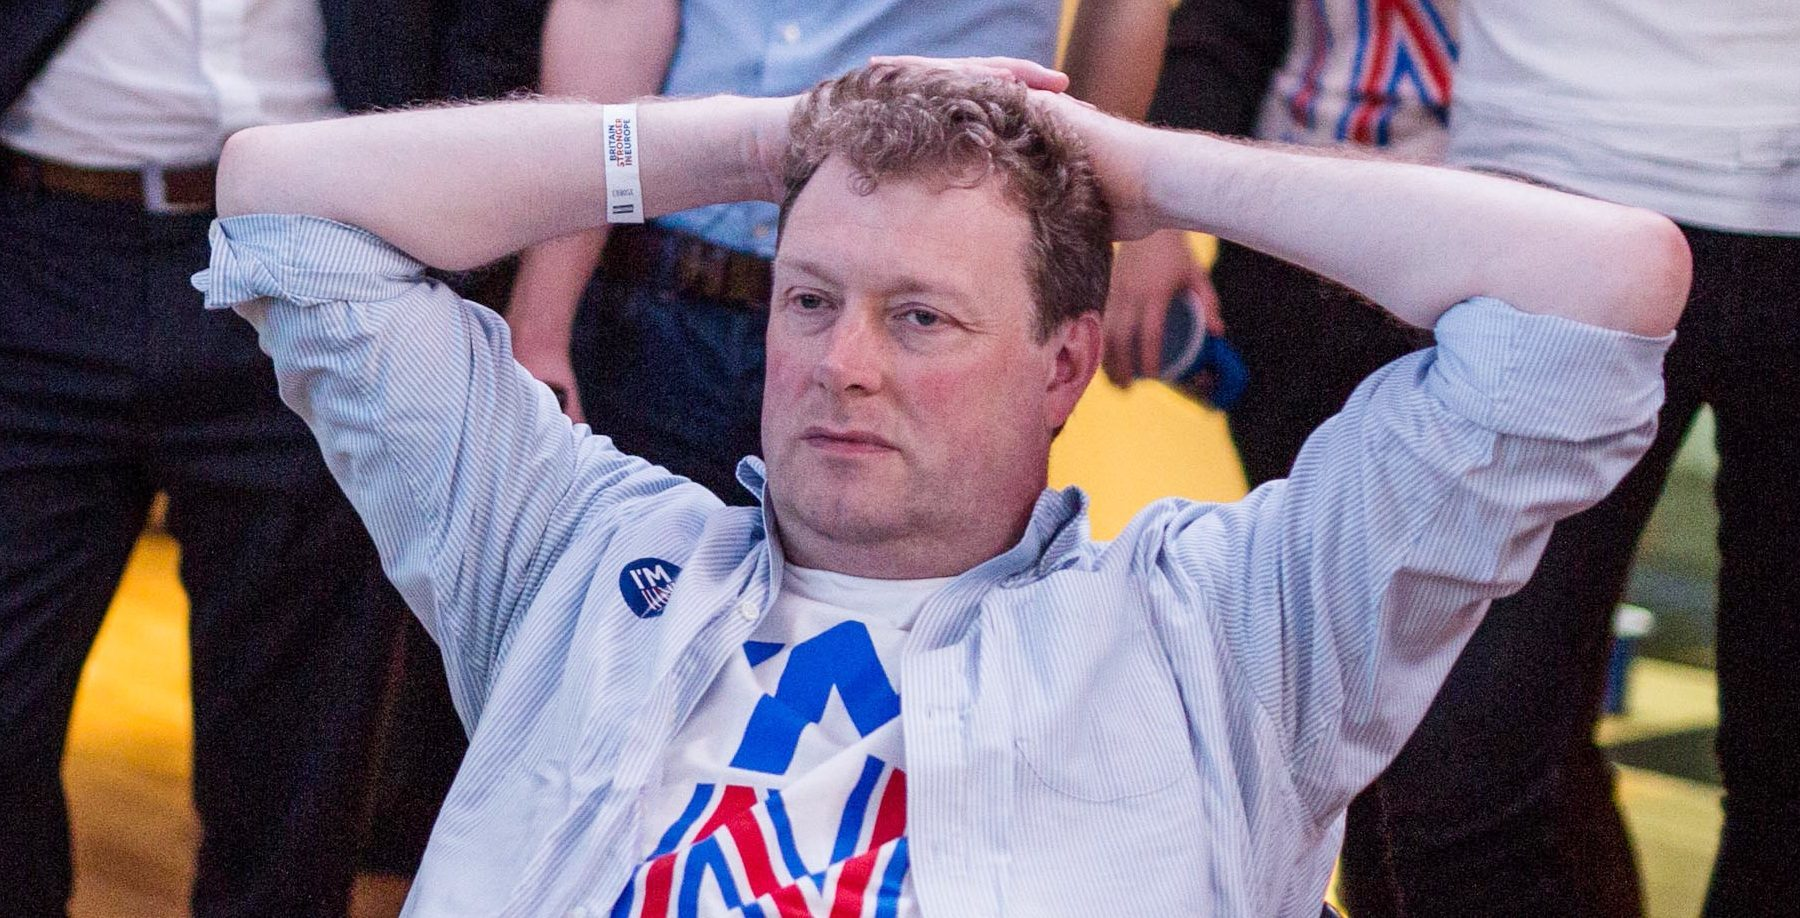 A dejected supporter of the Stronger In campaign reacts after hearing the results.